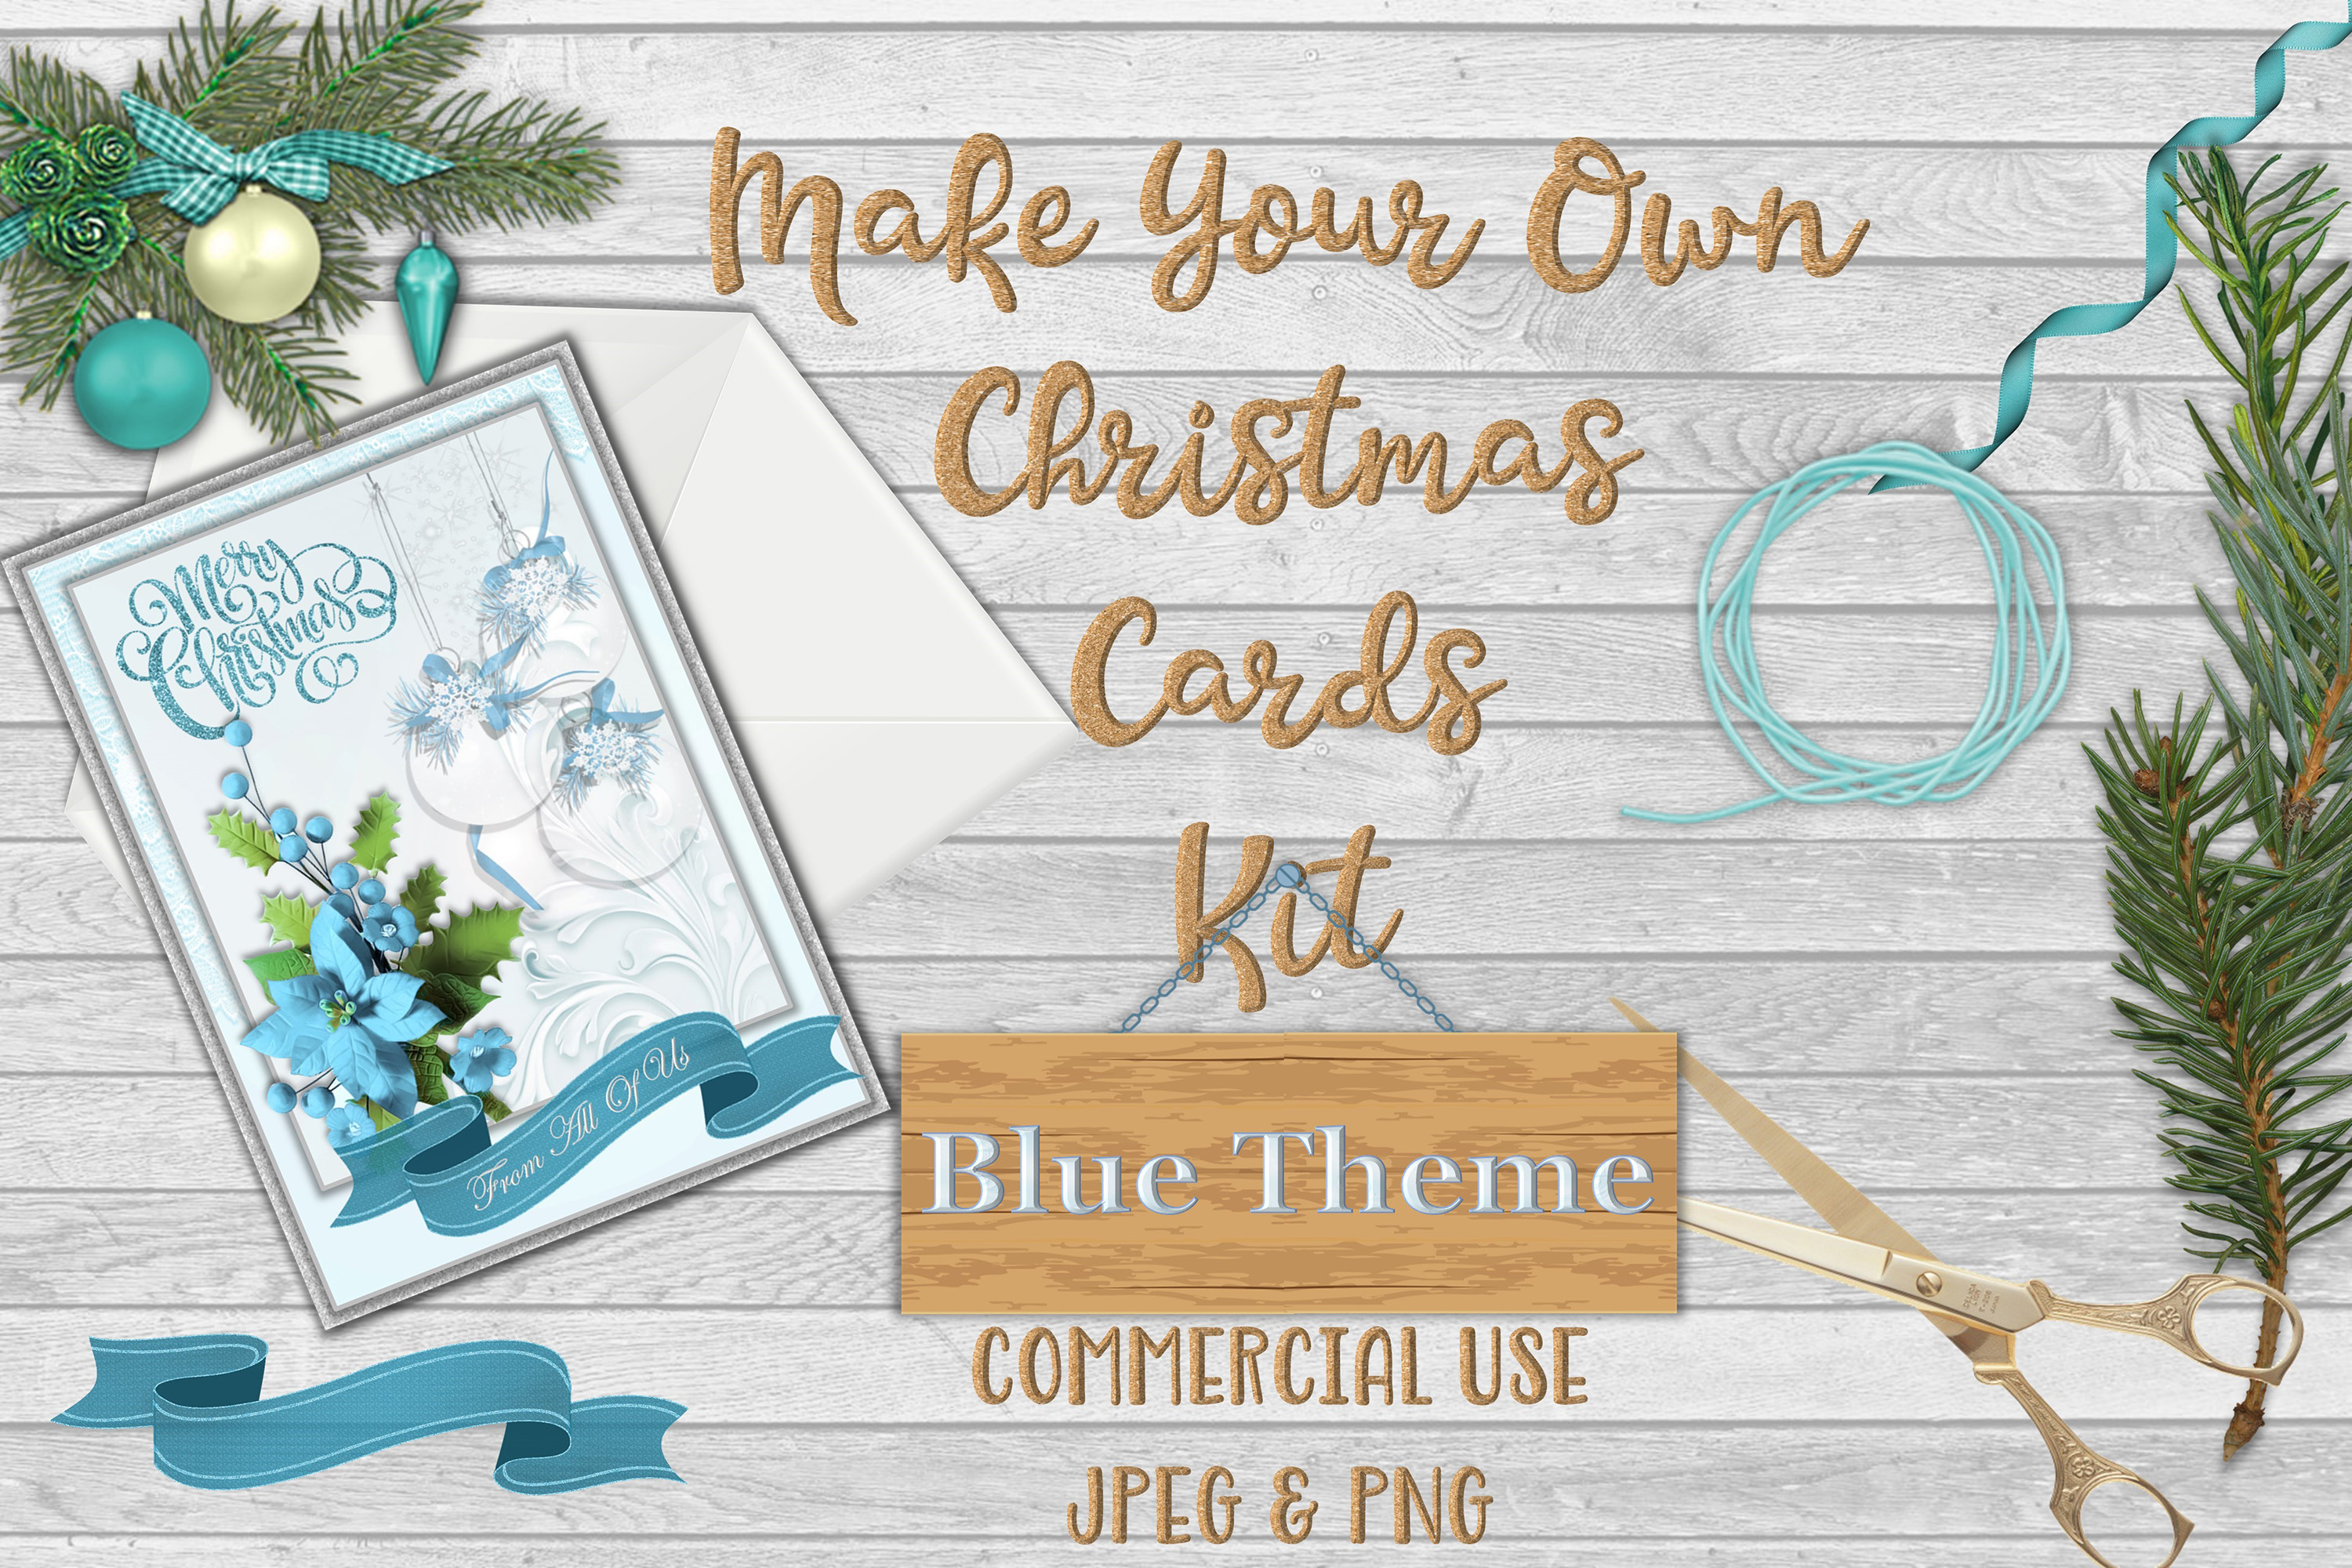 Christmas Card Images Free.Christmas Card Making Kit With Free Clipart